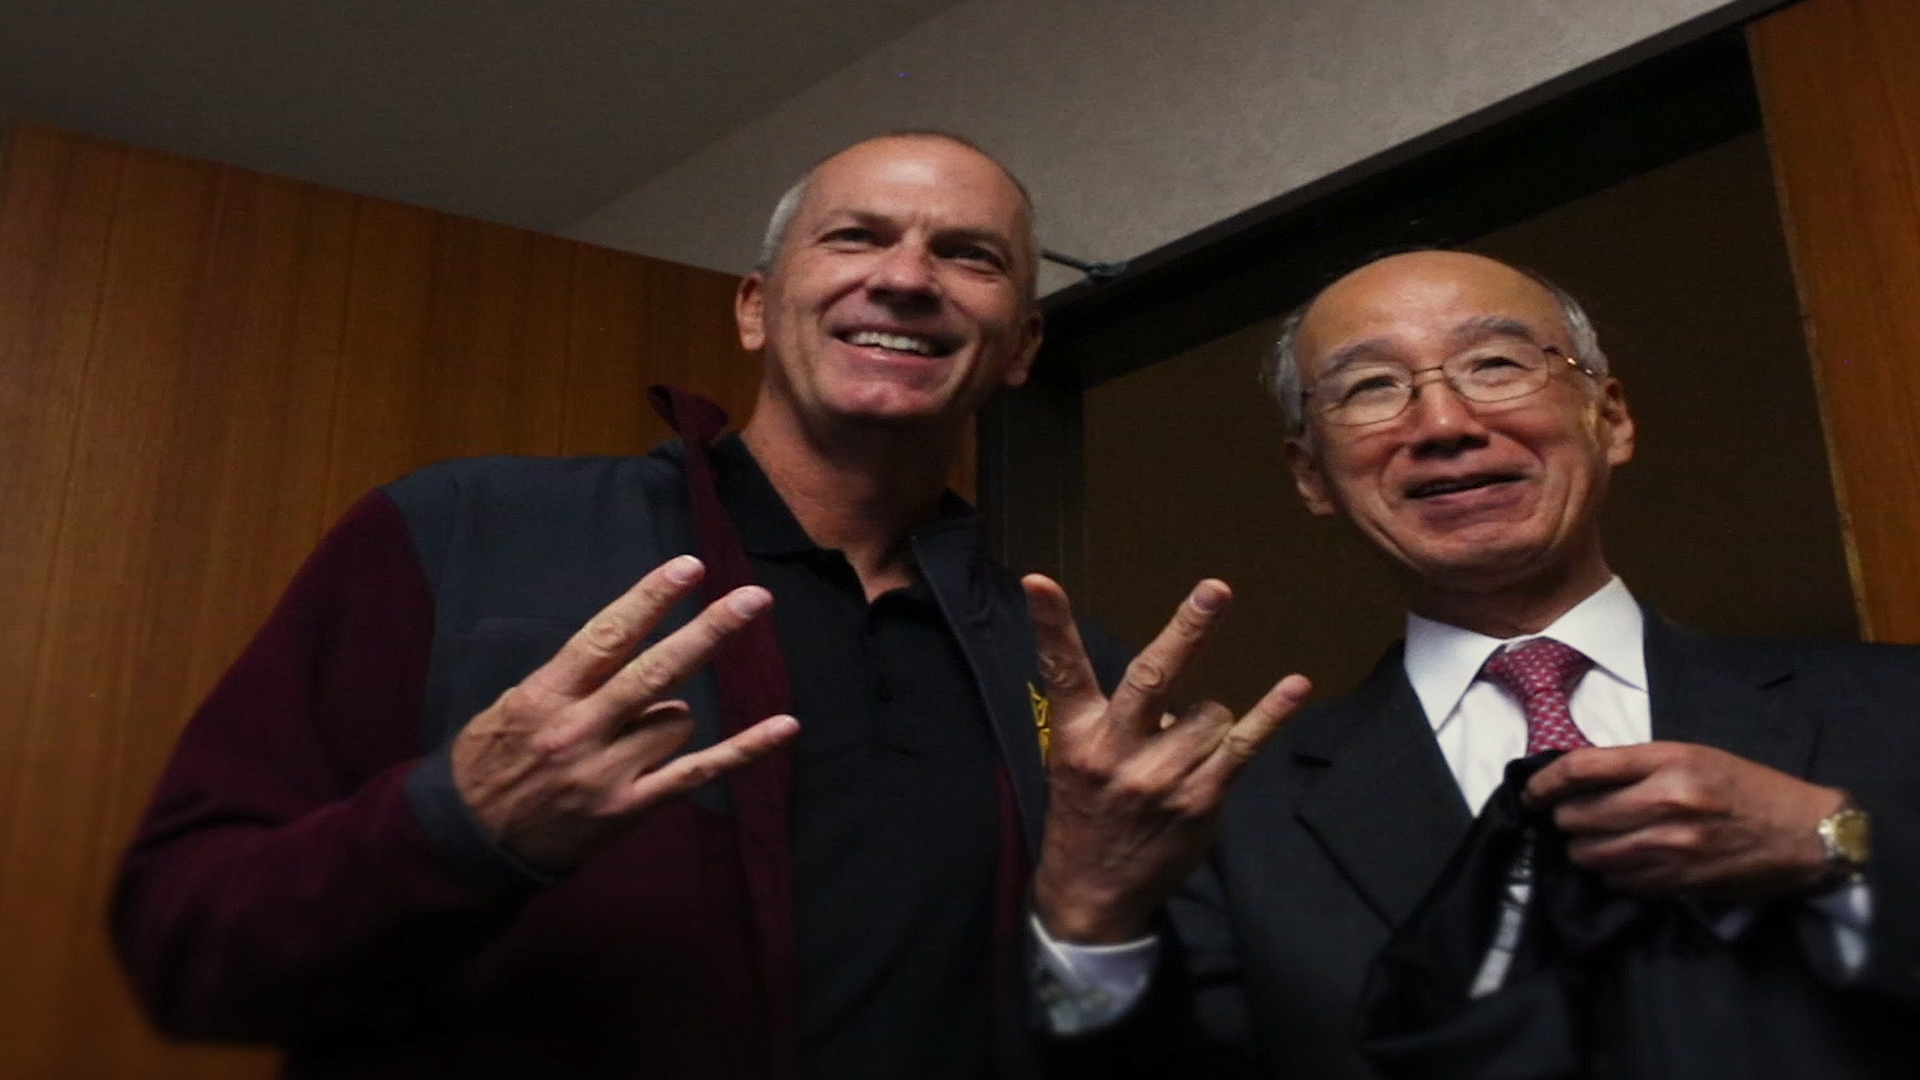 ASU coach looks to Japan for partnerships   ASU Now: Access, Excellence, Impact